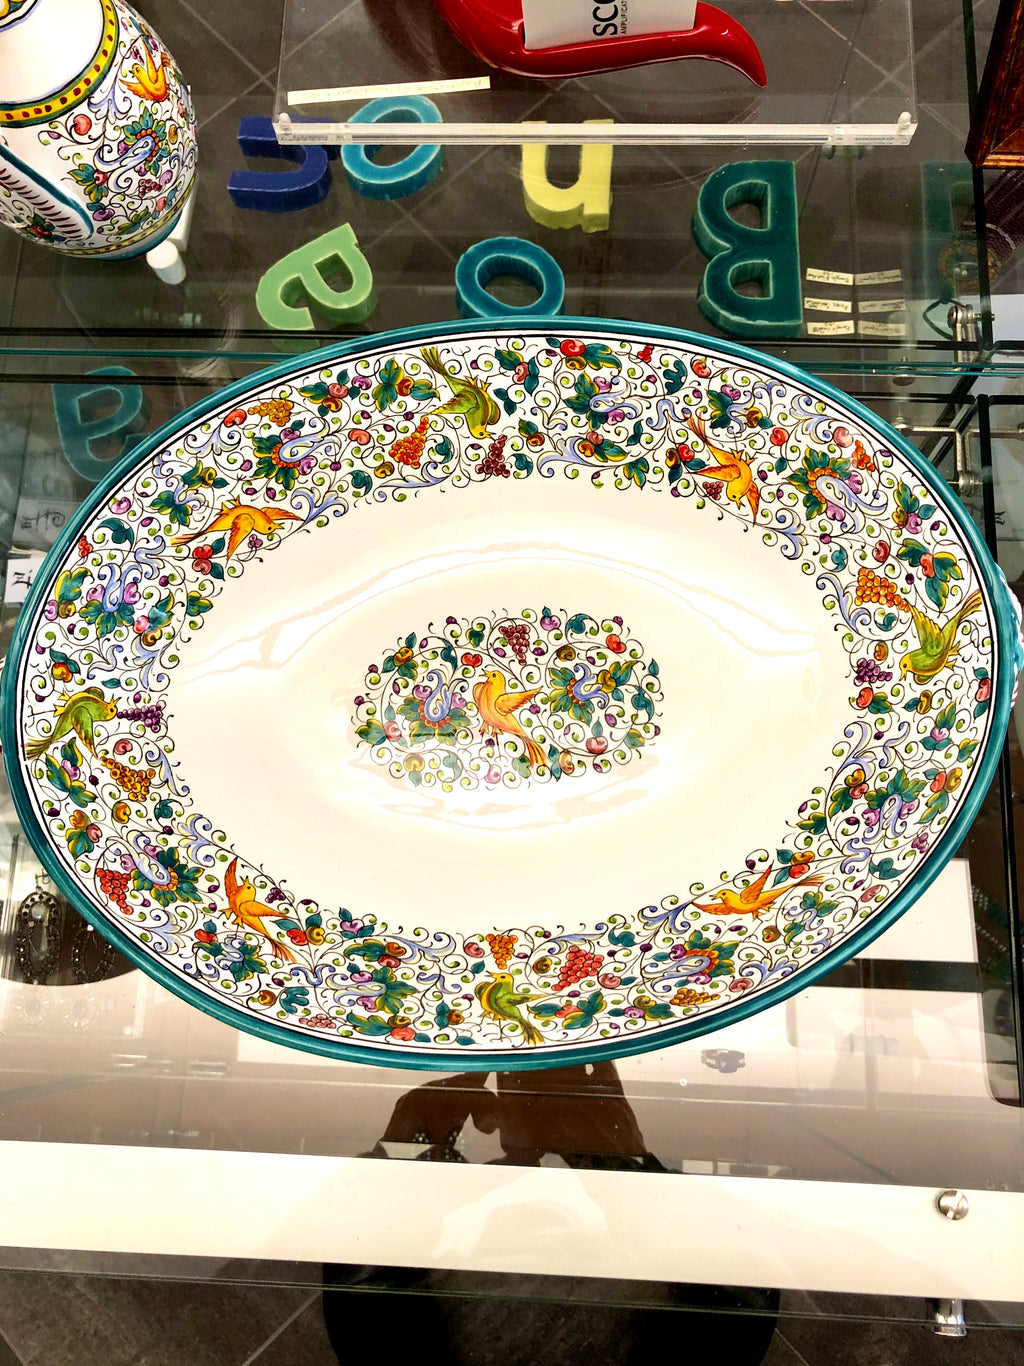 Ceramics, Serving Plate For Pasta. Porta Maccheroni